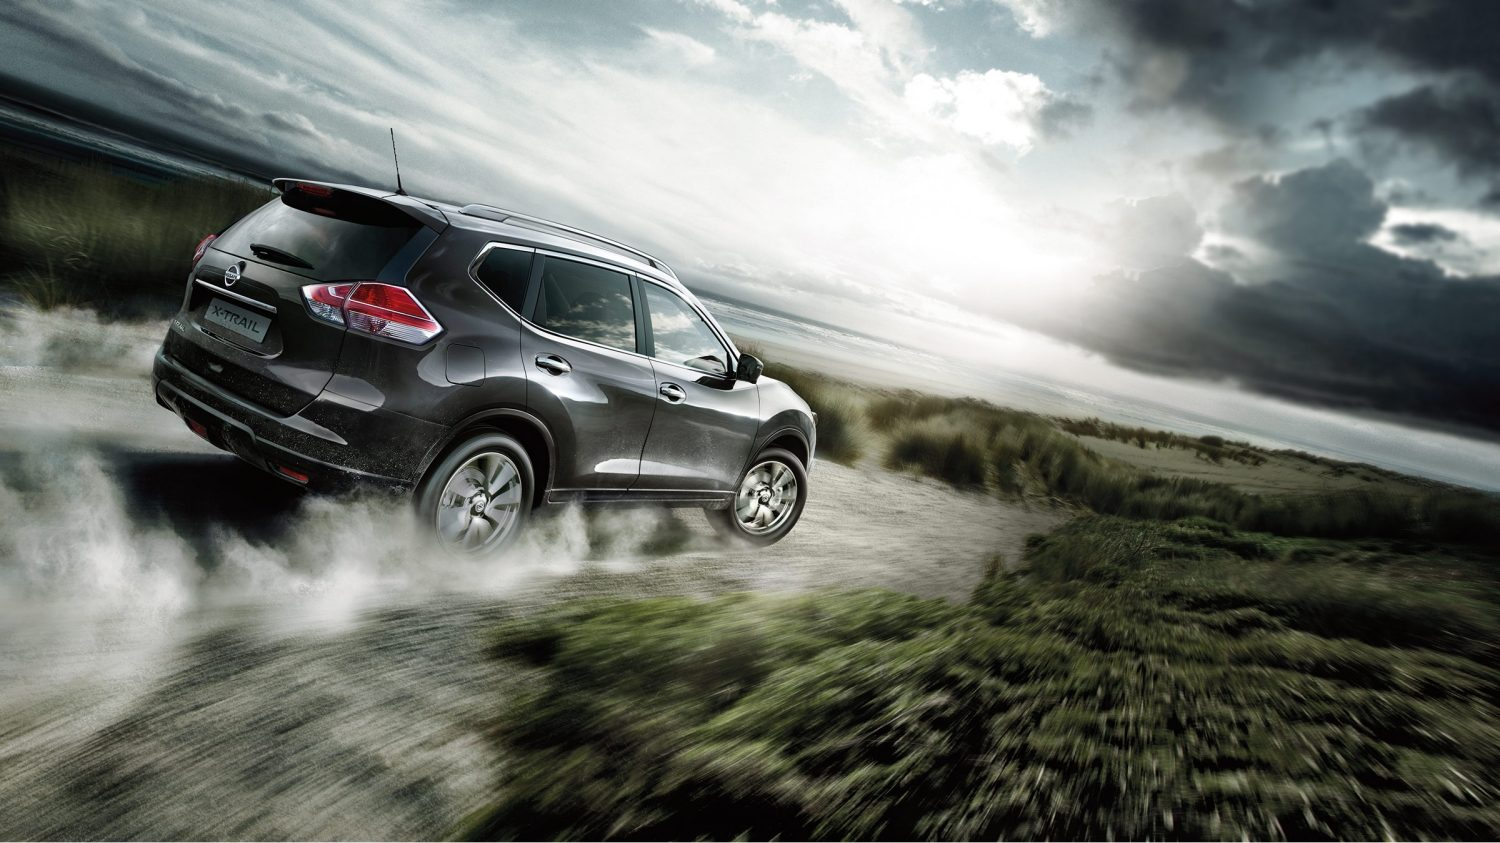 Introducing the Nissan X-Trail